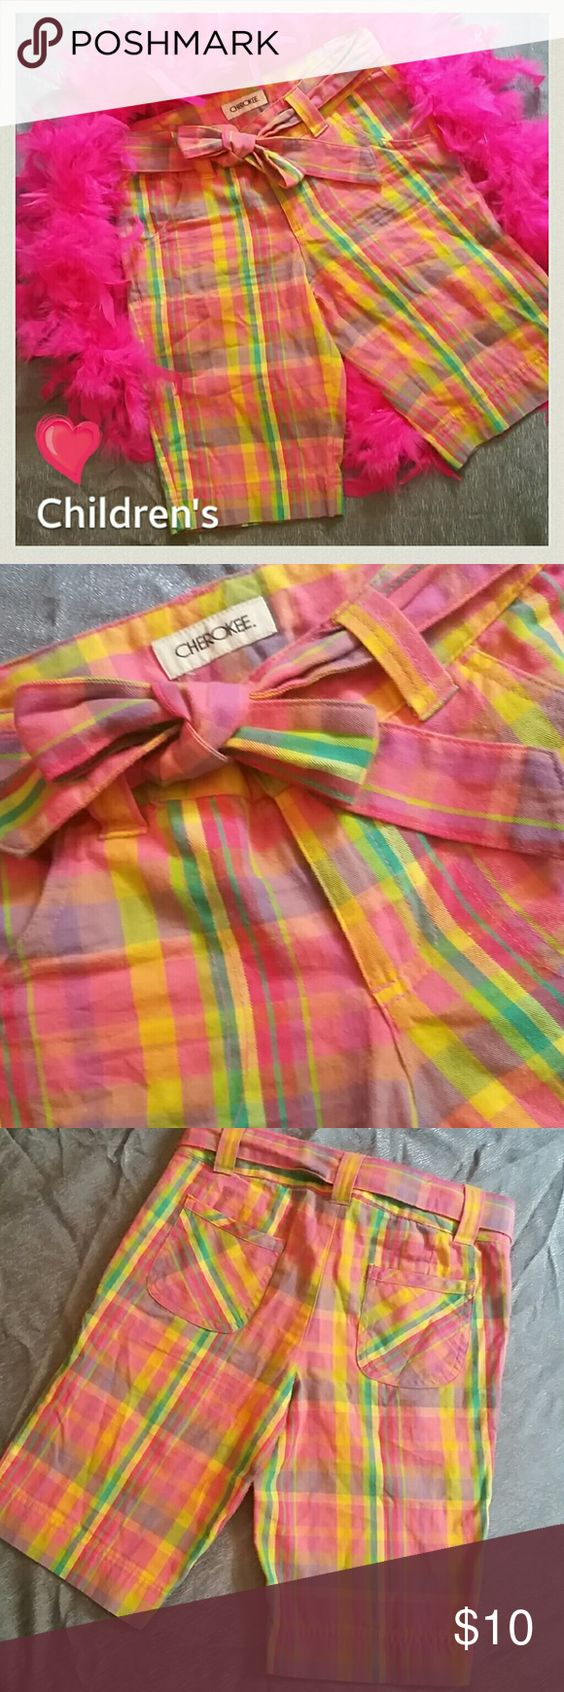 """Kids! Cherokee Bright Plaid Shorts W/ Belt These have been gently pre-loved a few times only. Great condition. And those colors pop! So cute! There are no rips, tears, etc. There is a tiny patch of minor pilling in the upper Thigh area. In between the legs. So unnoticeable! Can be easily removed if bothersome. REMOVABLE BELT. Elastic buttons inside for better fit and to accommodate growth. Adjustable.  Enjoy! Inseam 10"""" Rise 8"""" Waist Circ 24"""" Cherokee Bottoms Shorts"""